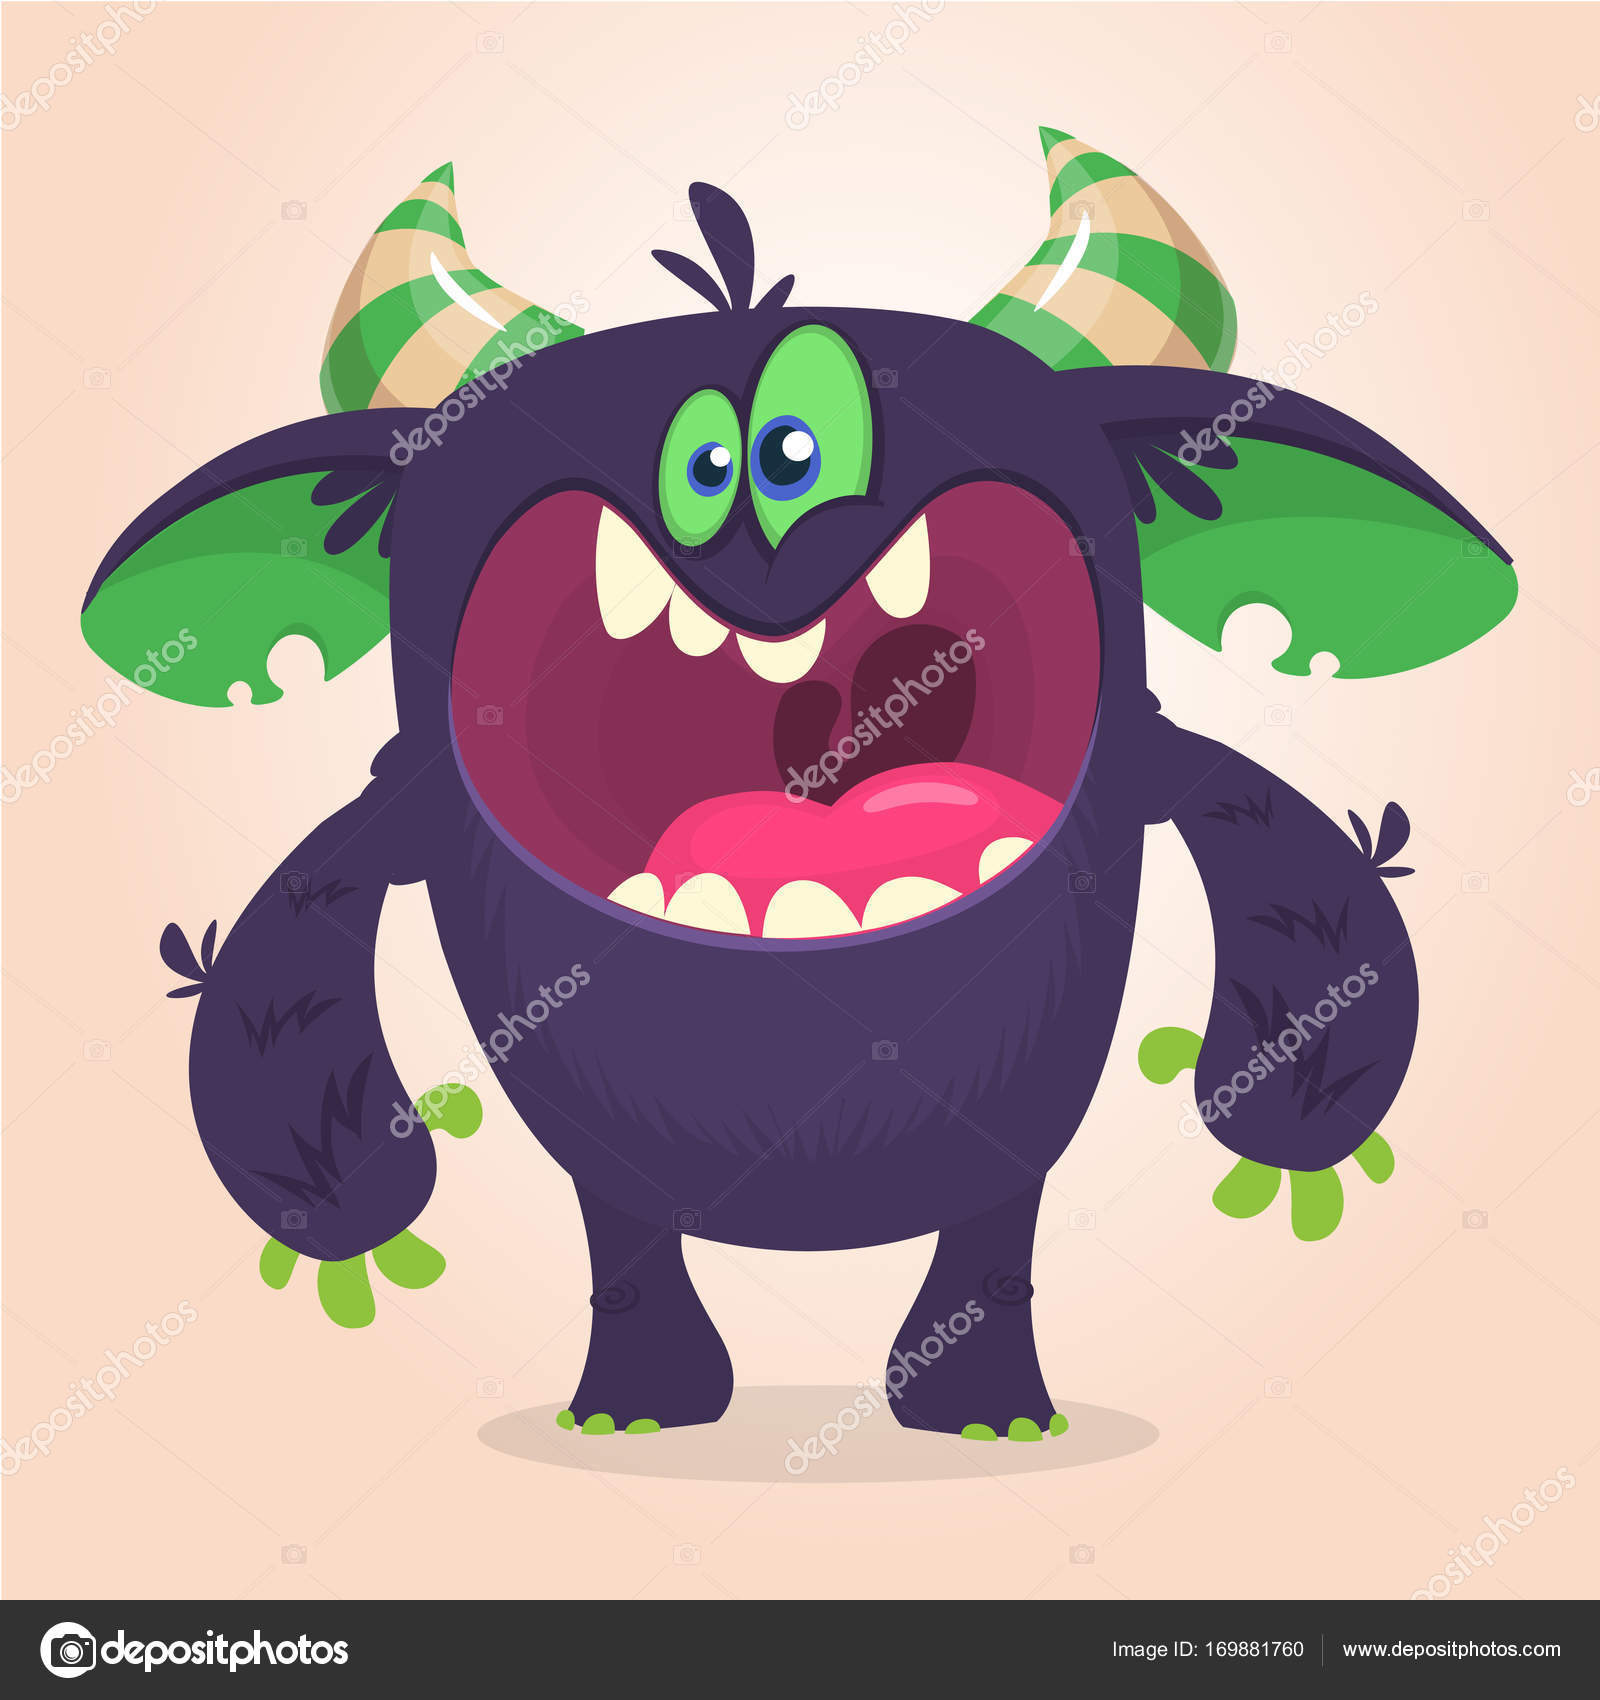 Angry cartoon black monster screanimg  Yelling angry monster